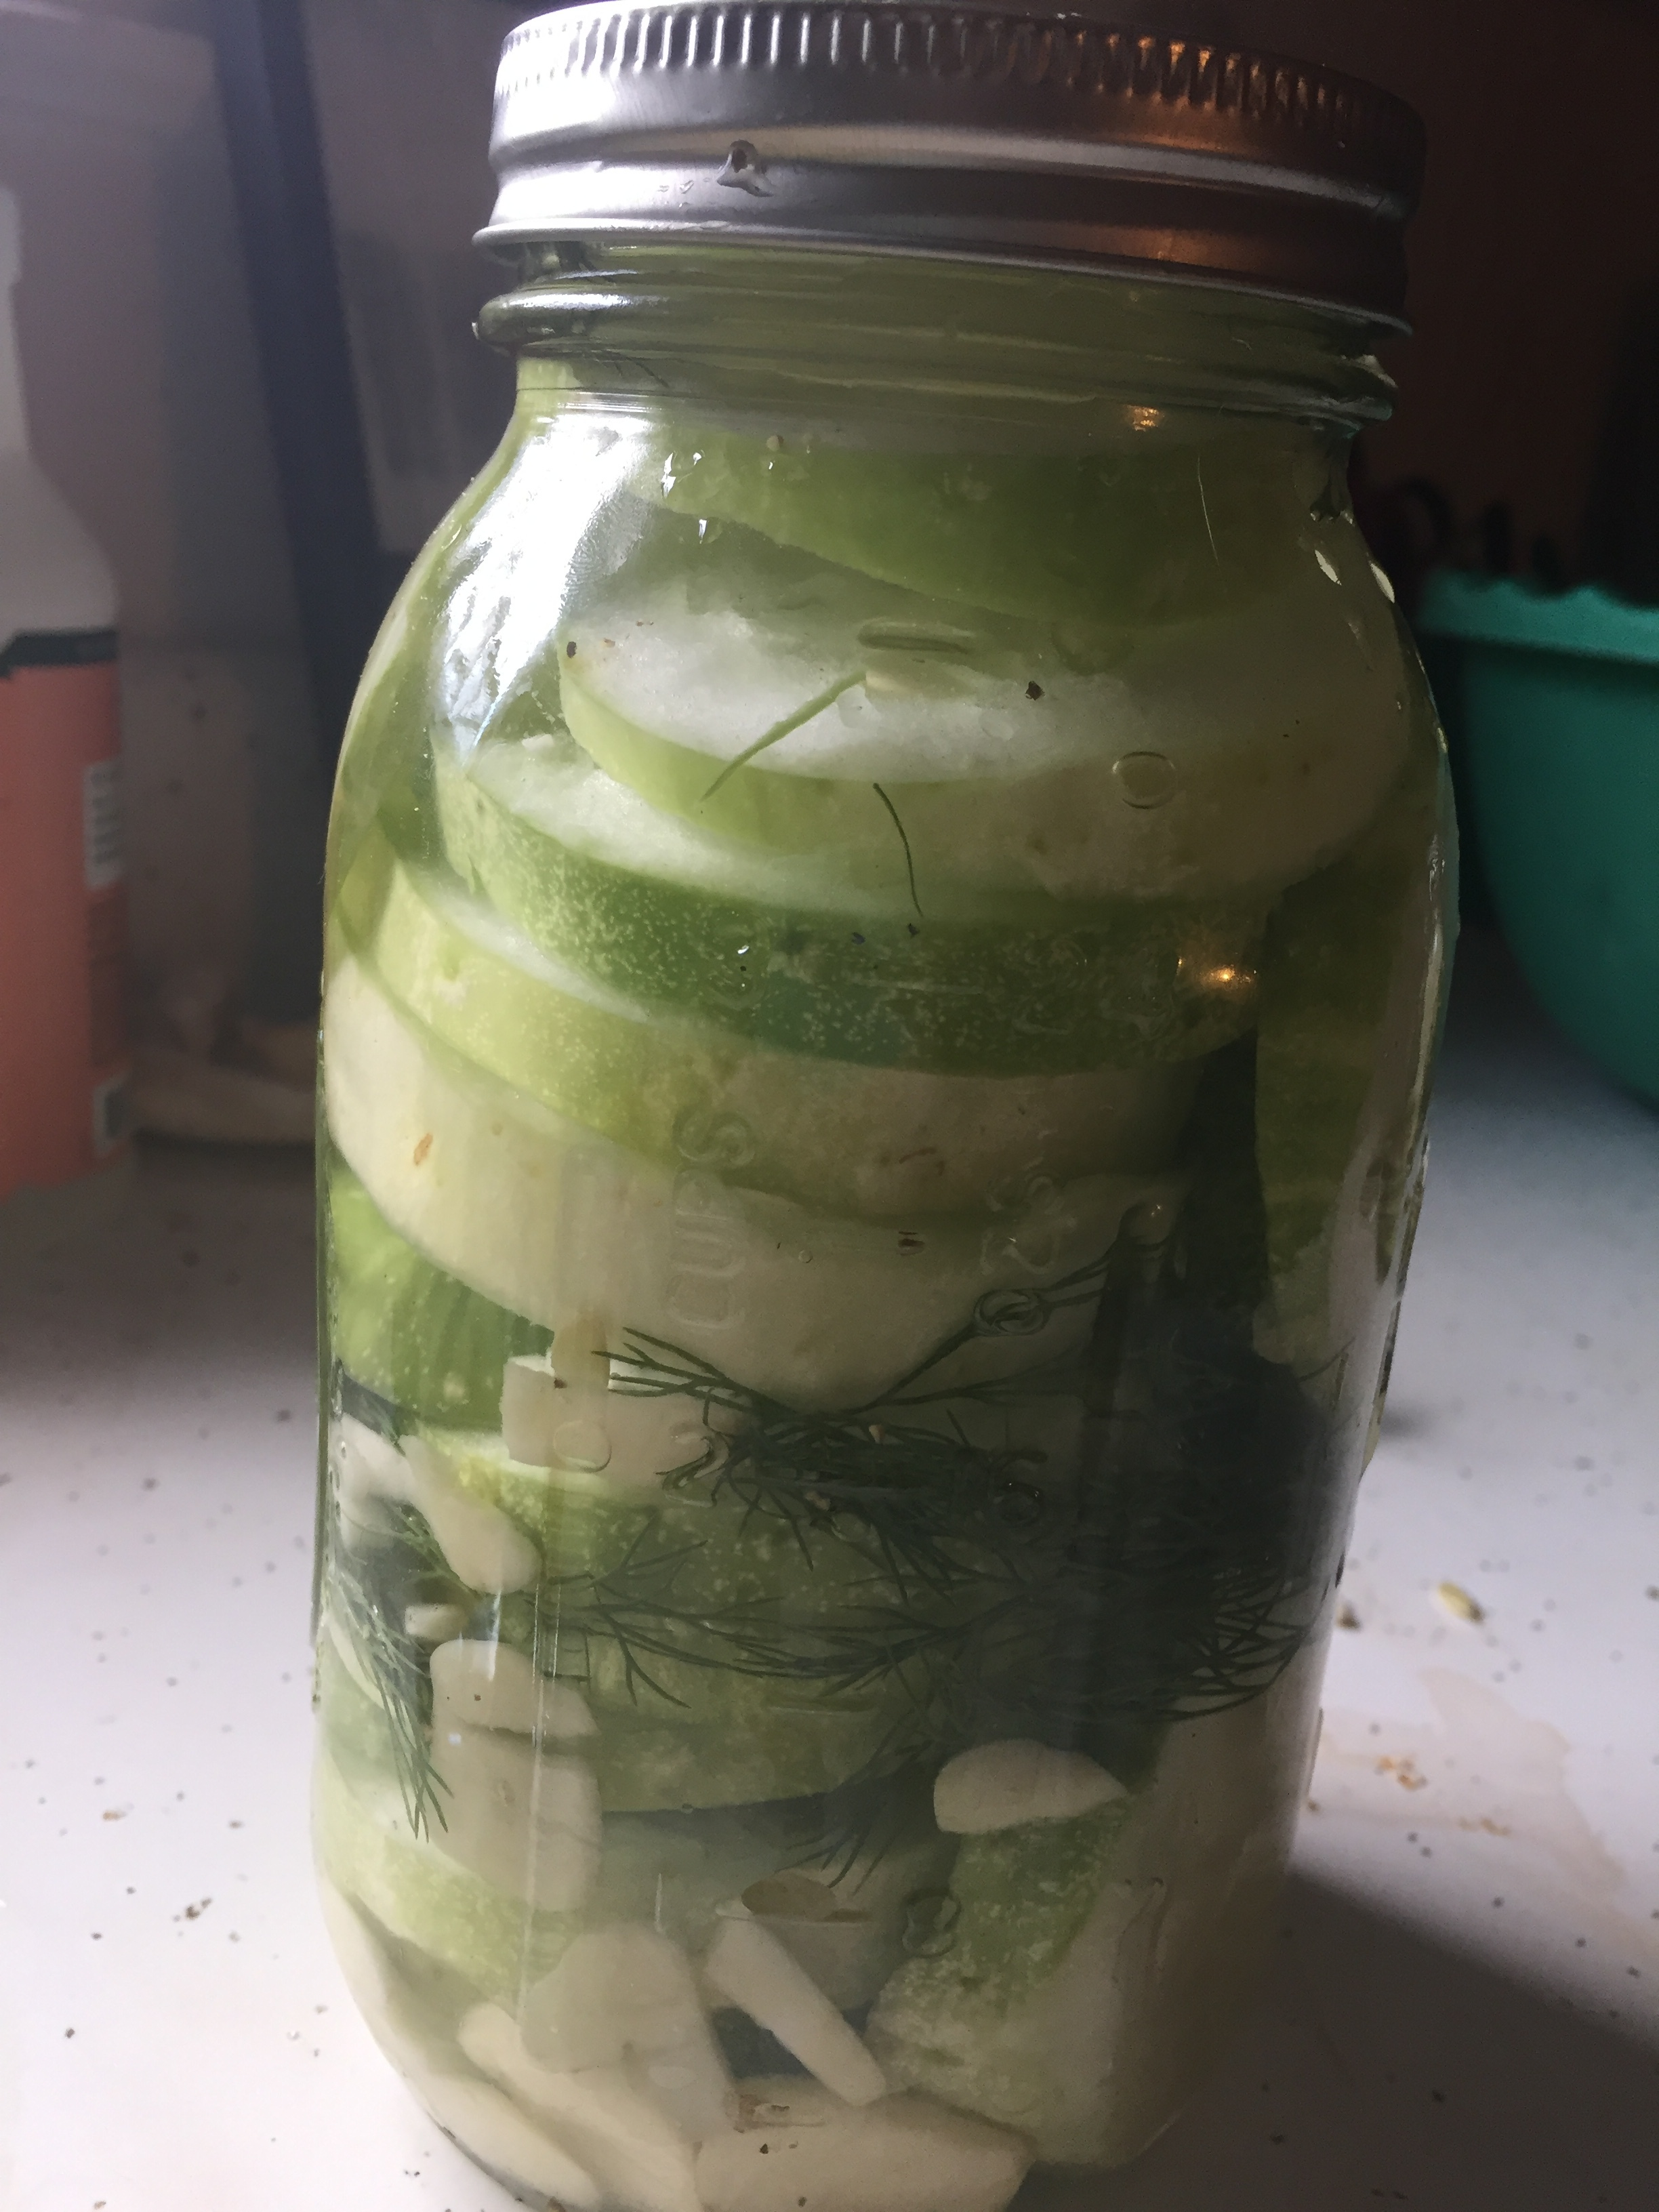 Ingredients  3 Medium cucumbers (my were very girthy, which I am always in favor of (Within reason) in my pickles). I am a cucumber afficionado.  bunch of dill  3-5 cloves of garlic  tbs of sea salt  1.5 cups of white vinegar  tbs of sugar  3.5 cups of water  *Optional: crushed red pepper flakes